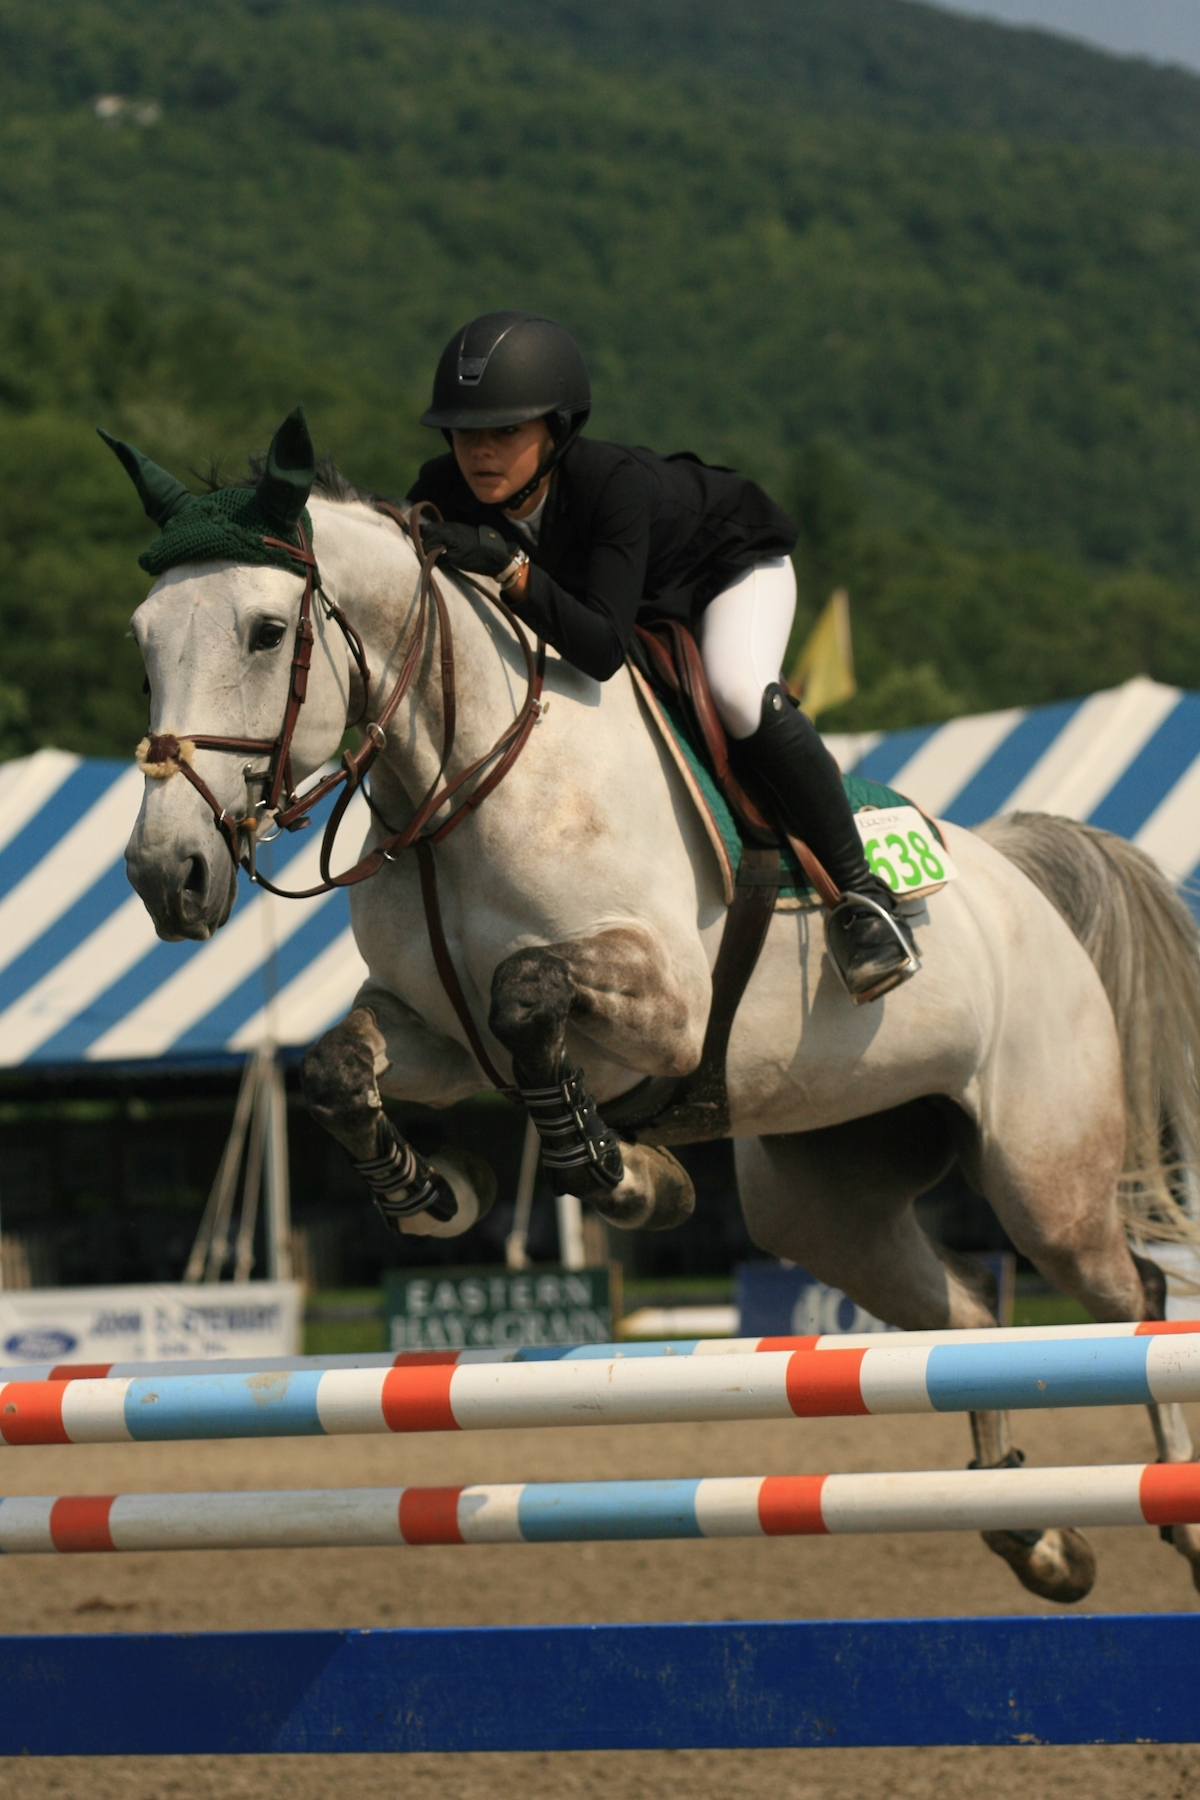 Hannah Lupica and Hypnose Van Paemel won the $1,500 Marshall & Sterling Children's Jumper Classic on July 12 at the Vermont Summer Festival in East Dorset, VT.<br><b>Photo by <a href='http://www.photoreflect.com/home/default.aspx' target='_blank'>David Mullinix Photography</a></b>